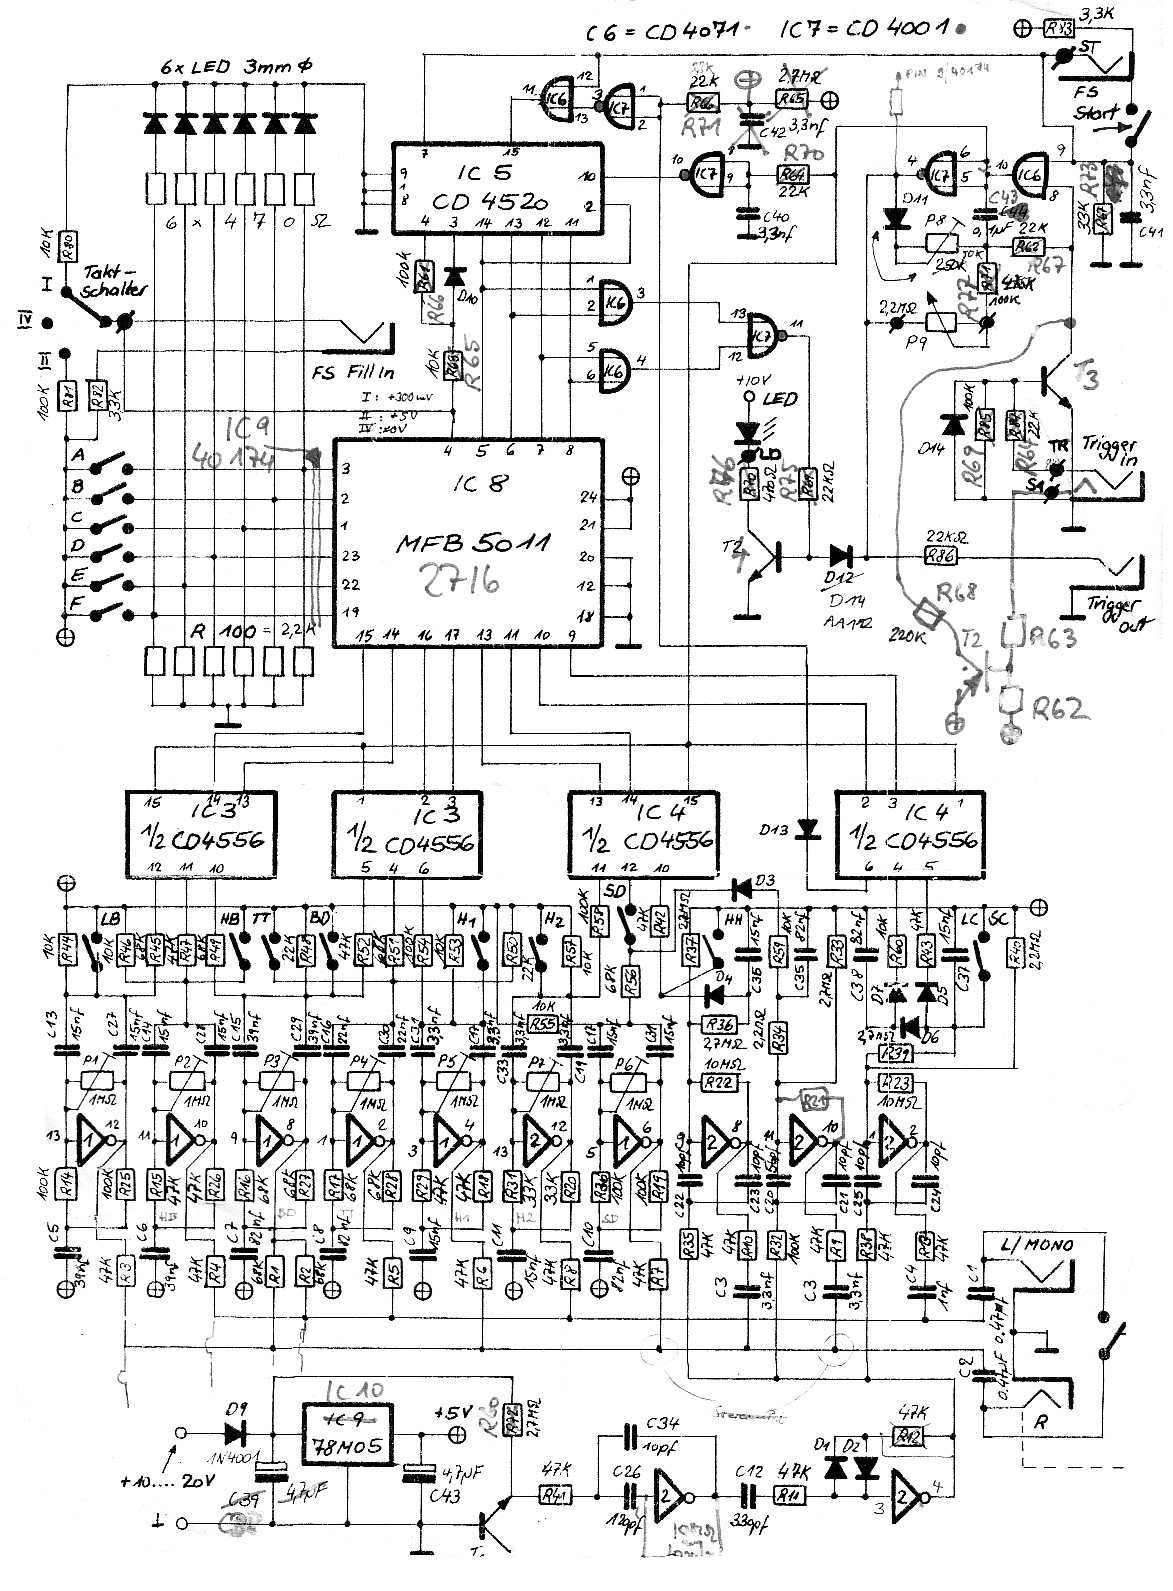 Synthesizer service manuals free download.